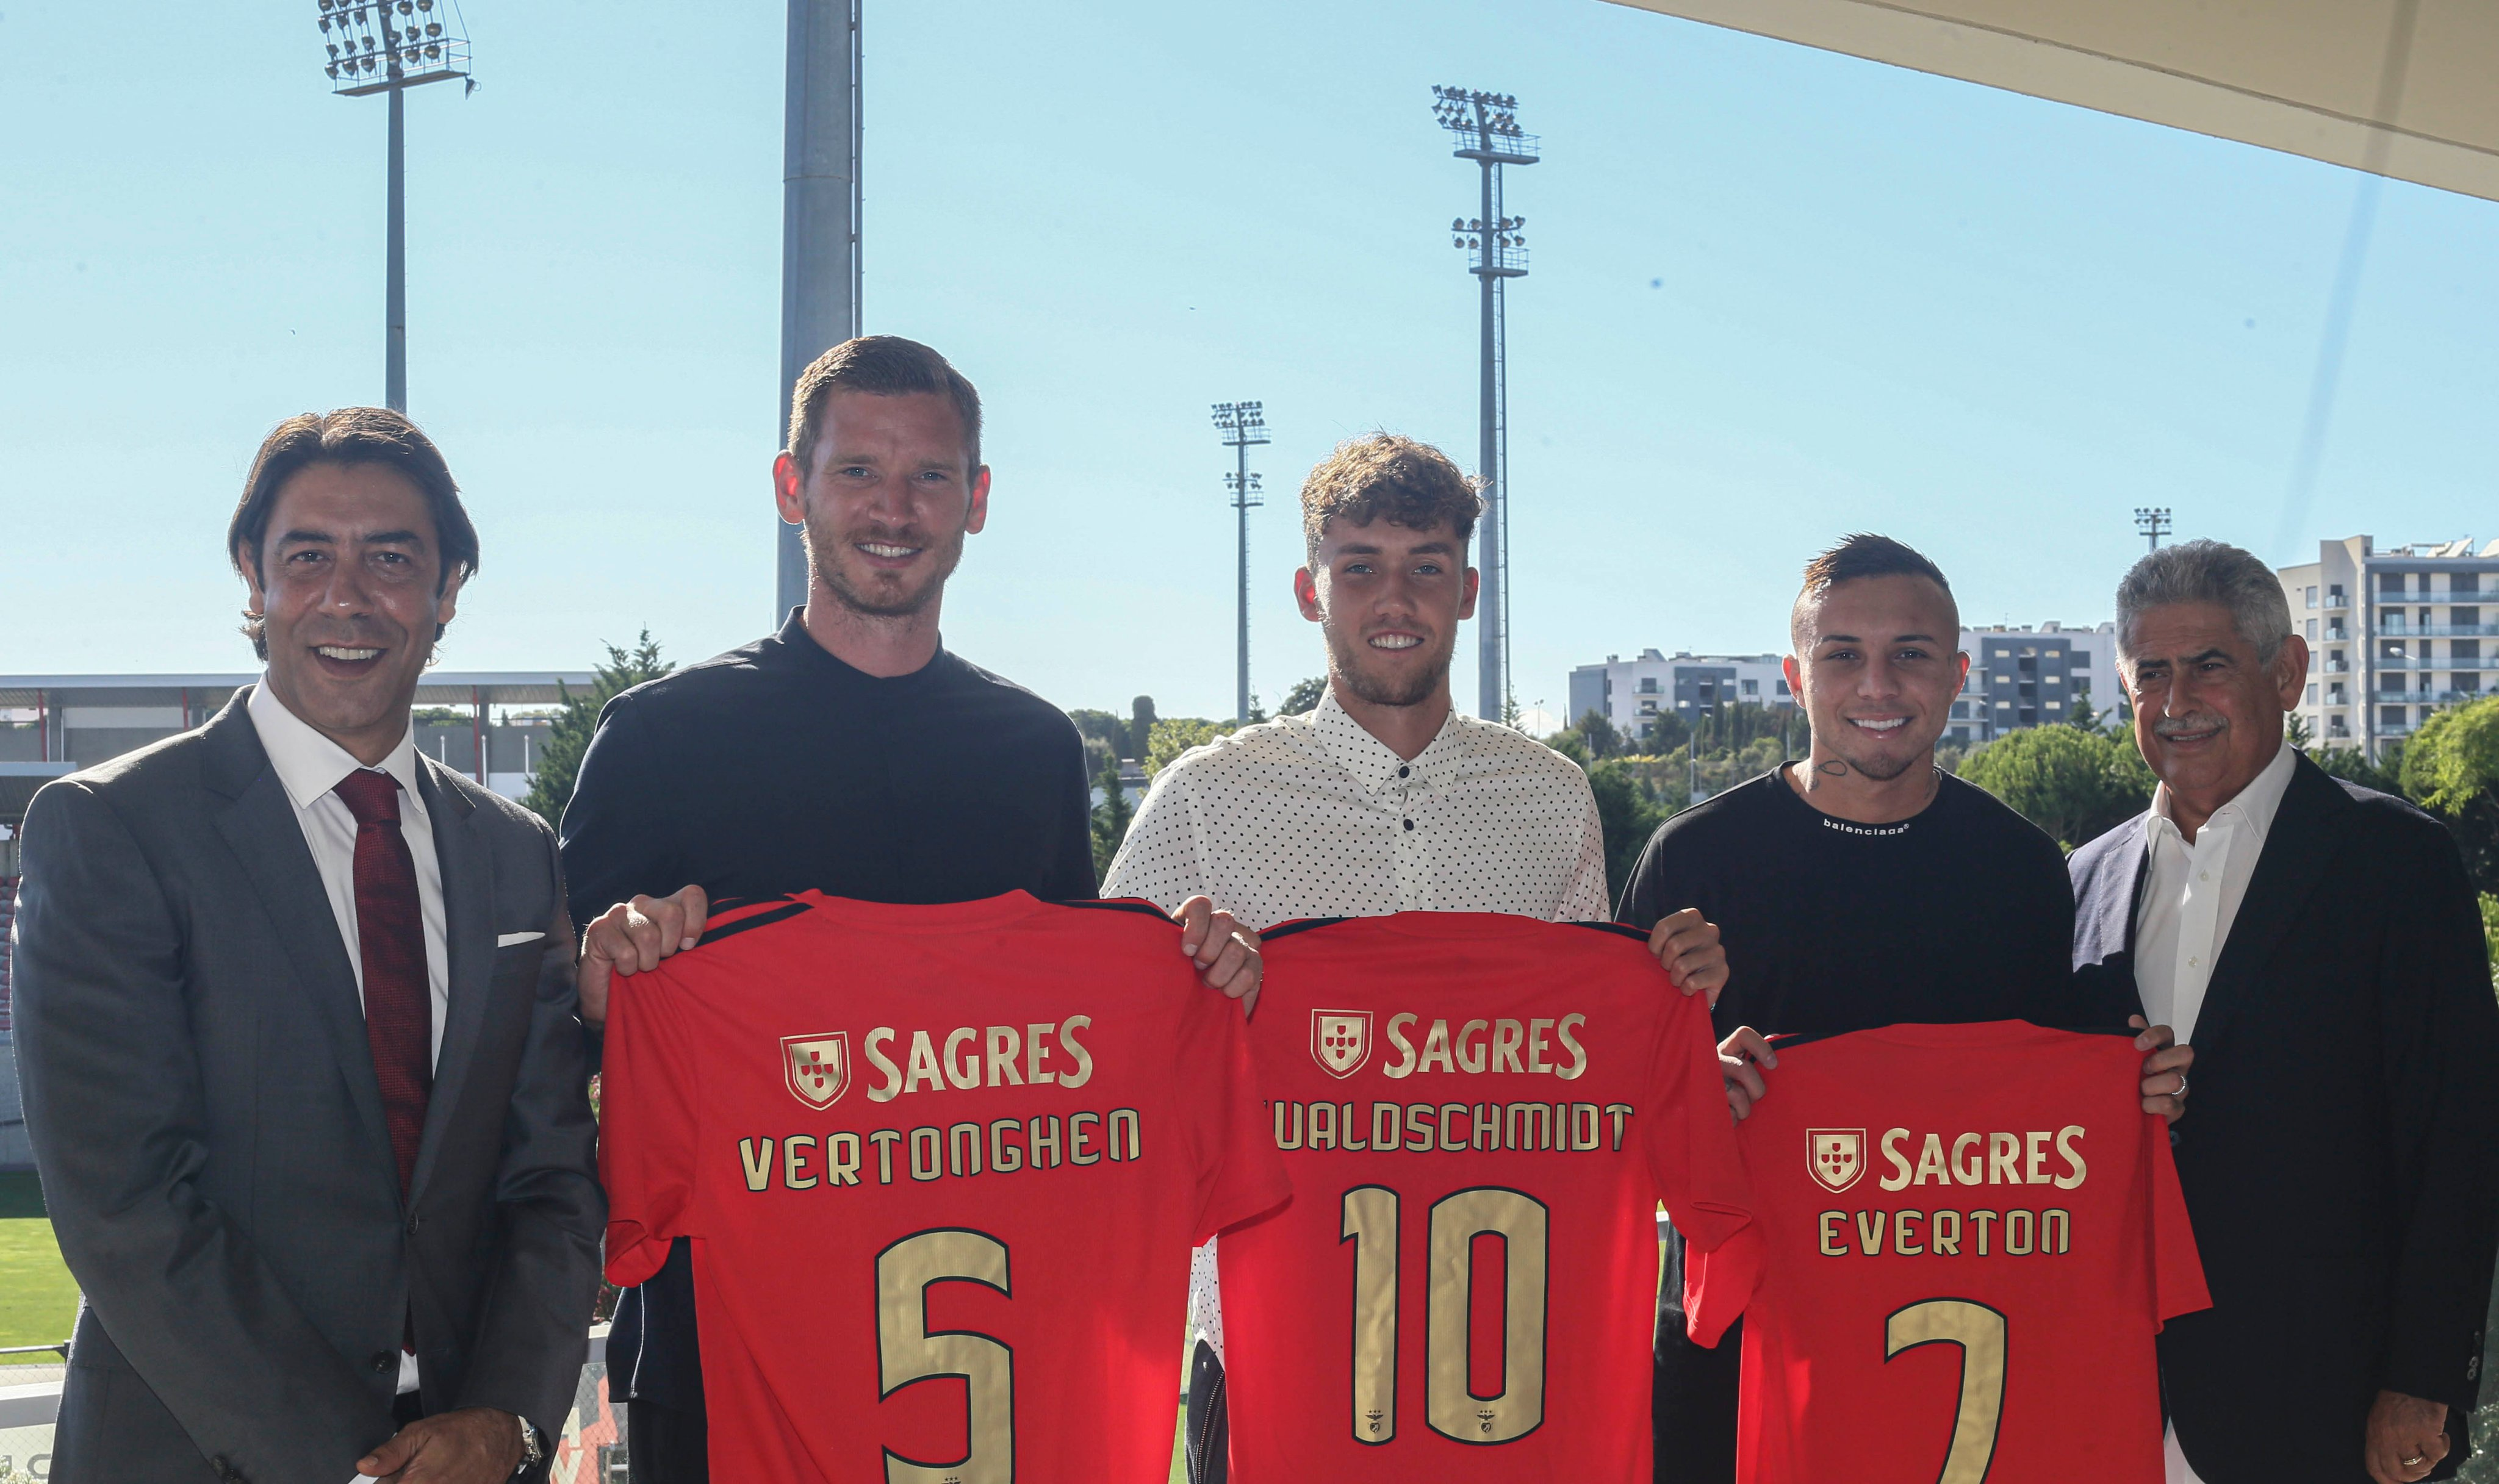 Scary Benfica makes three major moves in one day: Vertonghen, Everton, Waldschmidt!